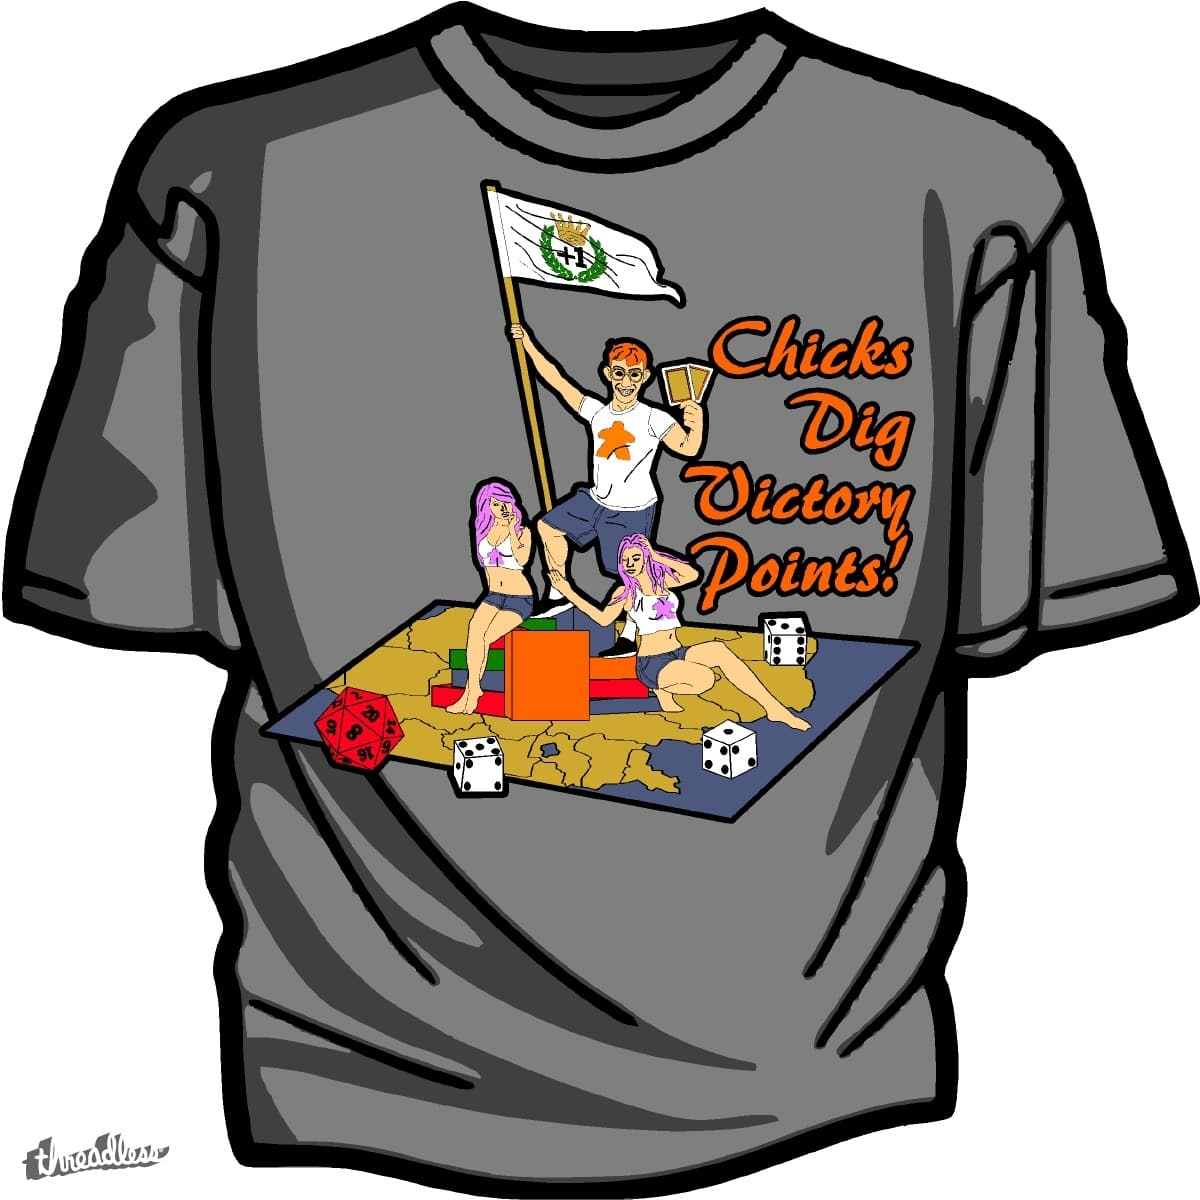 Chicks Dig Victory Points by RyTracer27 on Threadless